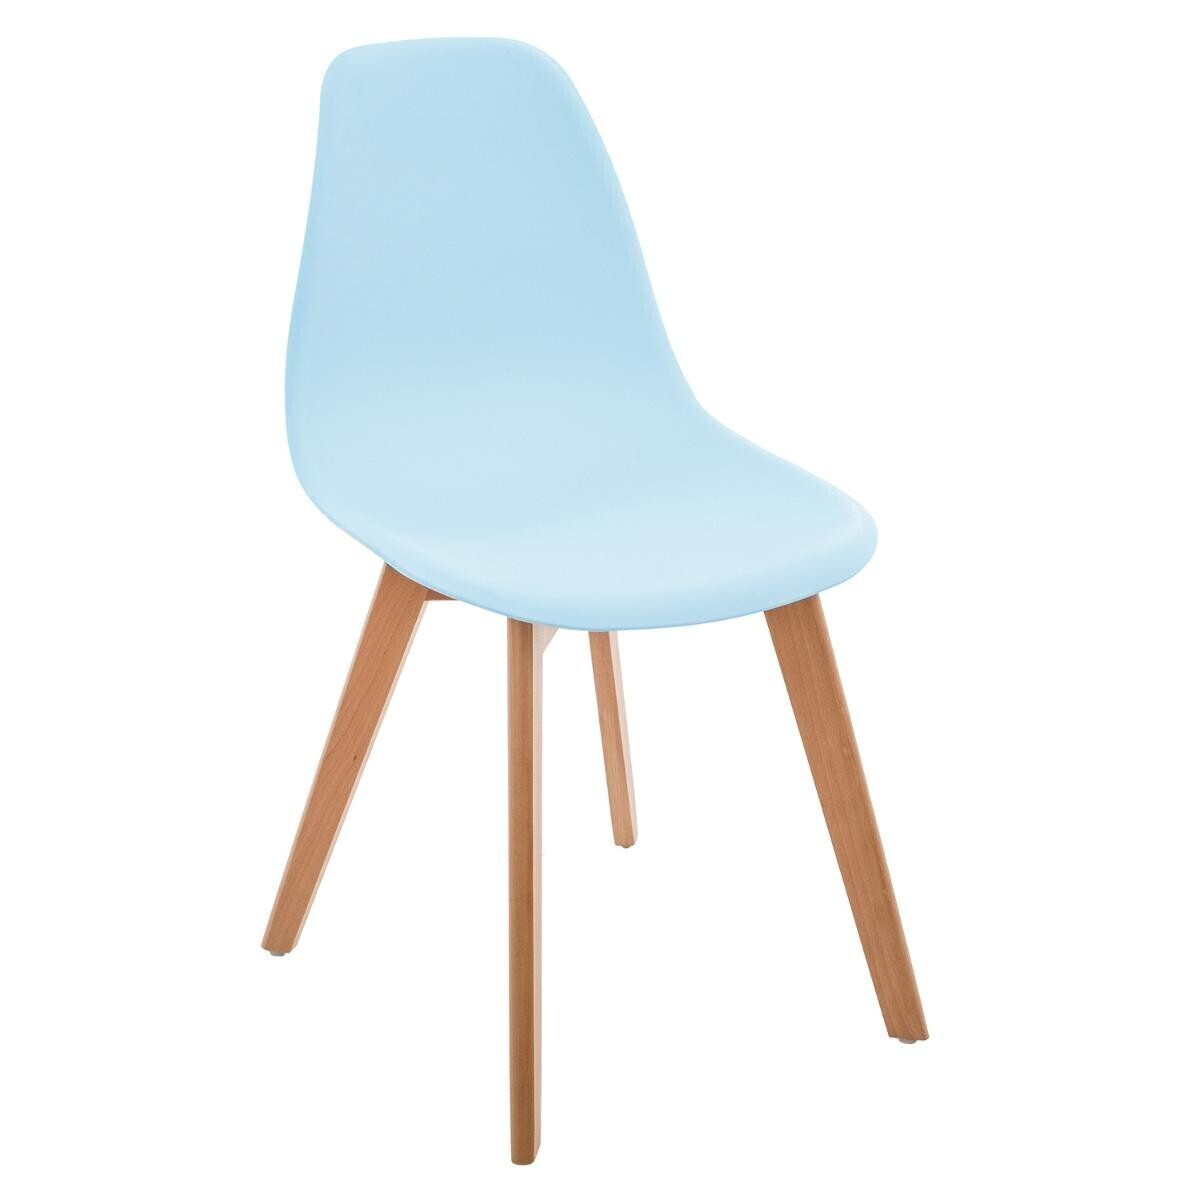 Chaise En Polypropylène Avis Chaise Bleue En Polypropylène Atmosphera